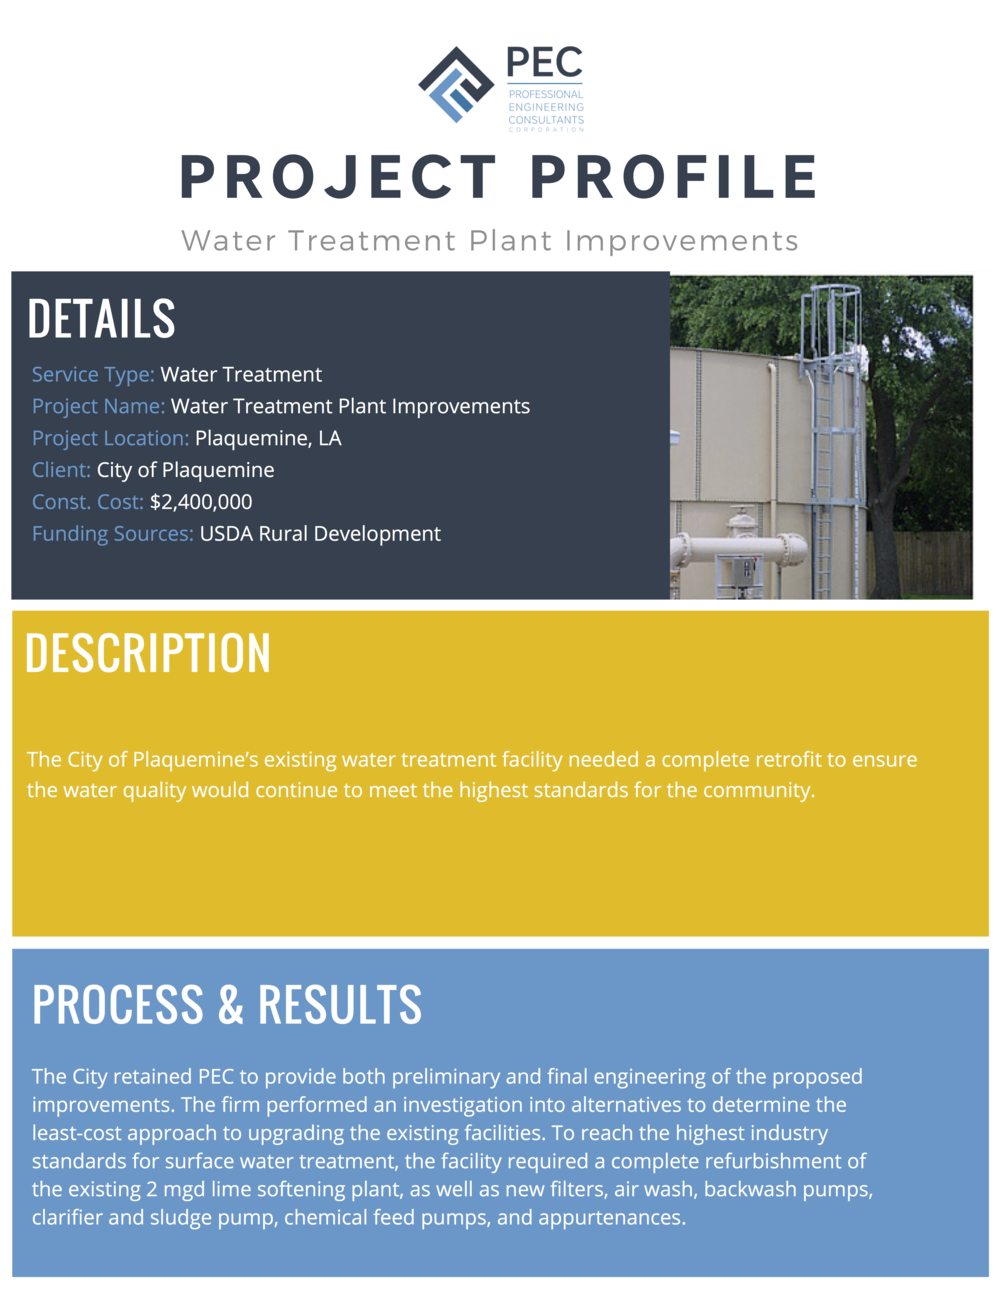 Project Profile_Water Treatment Plant Improvements (1).jpg